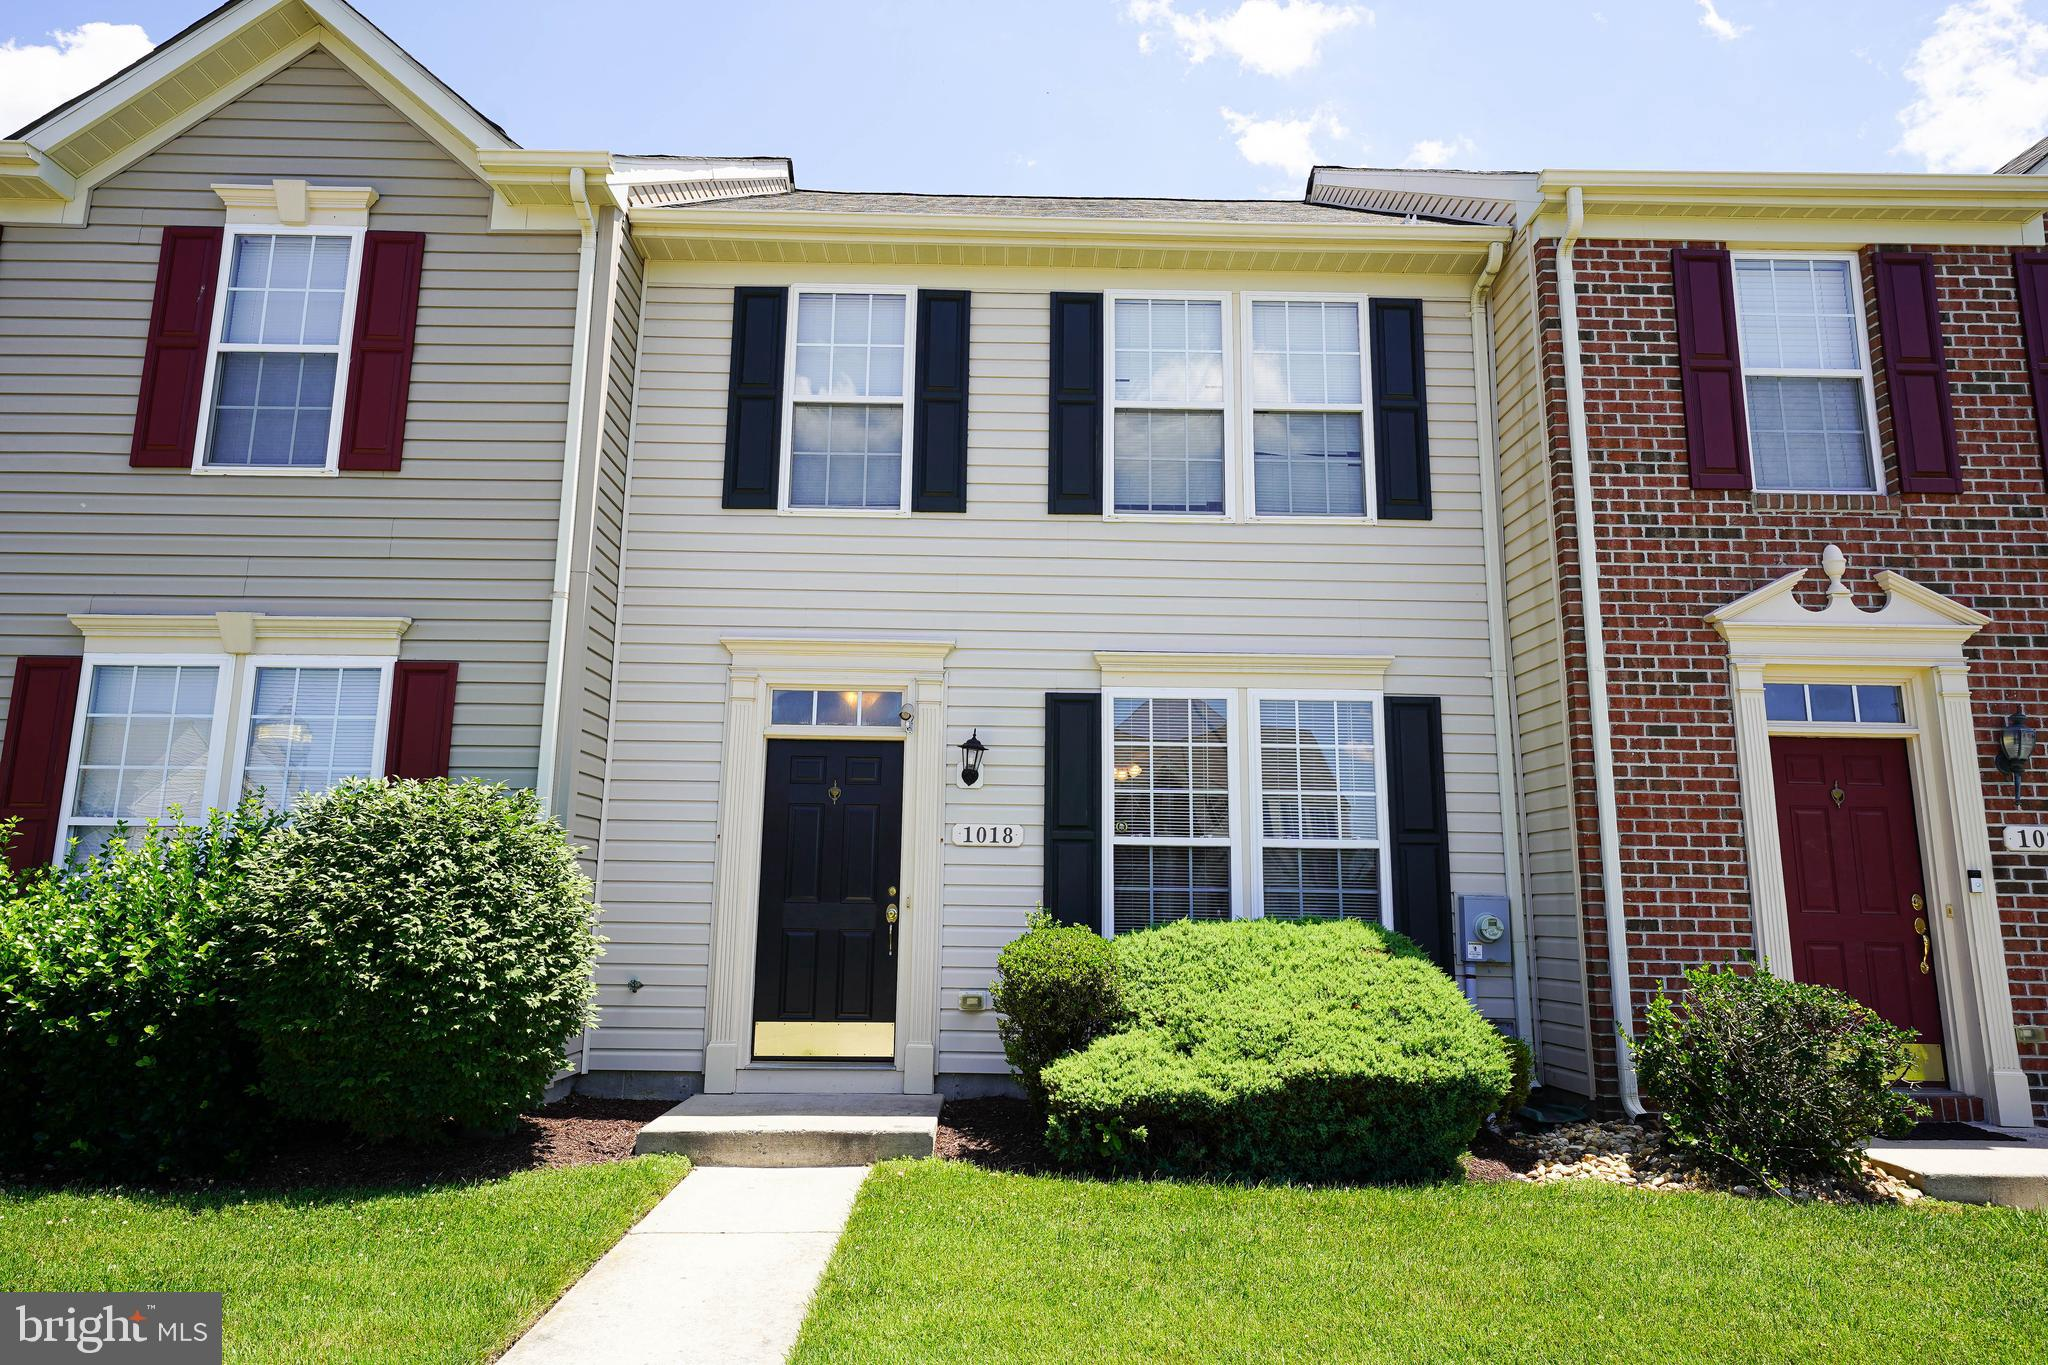 Adorable & Affordable 3 bedroom, 2.5 bath townhouse in Merritt Mill Community. Desired location, con